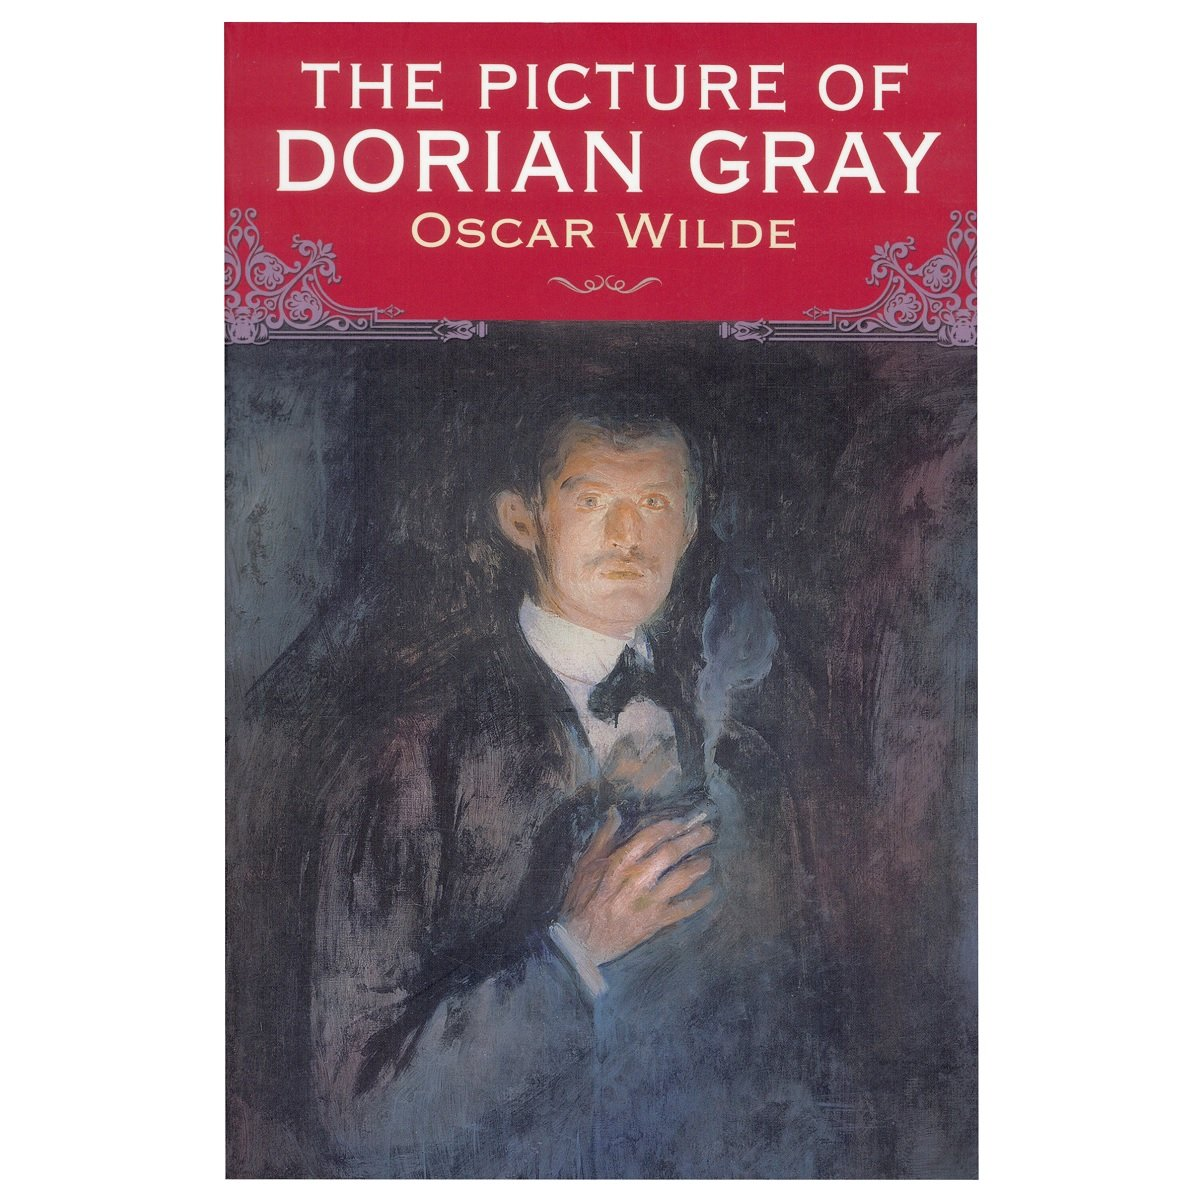 color innocence picture dorian gray oscar wilde examines c Need help on symbols in oscar wilde's the picture of dorian gray check out our detailed analysis from the creators of sparknotes.